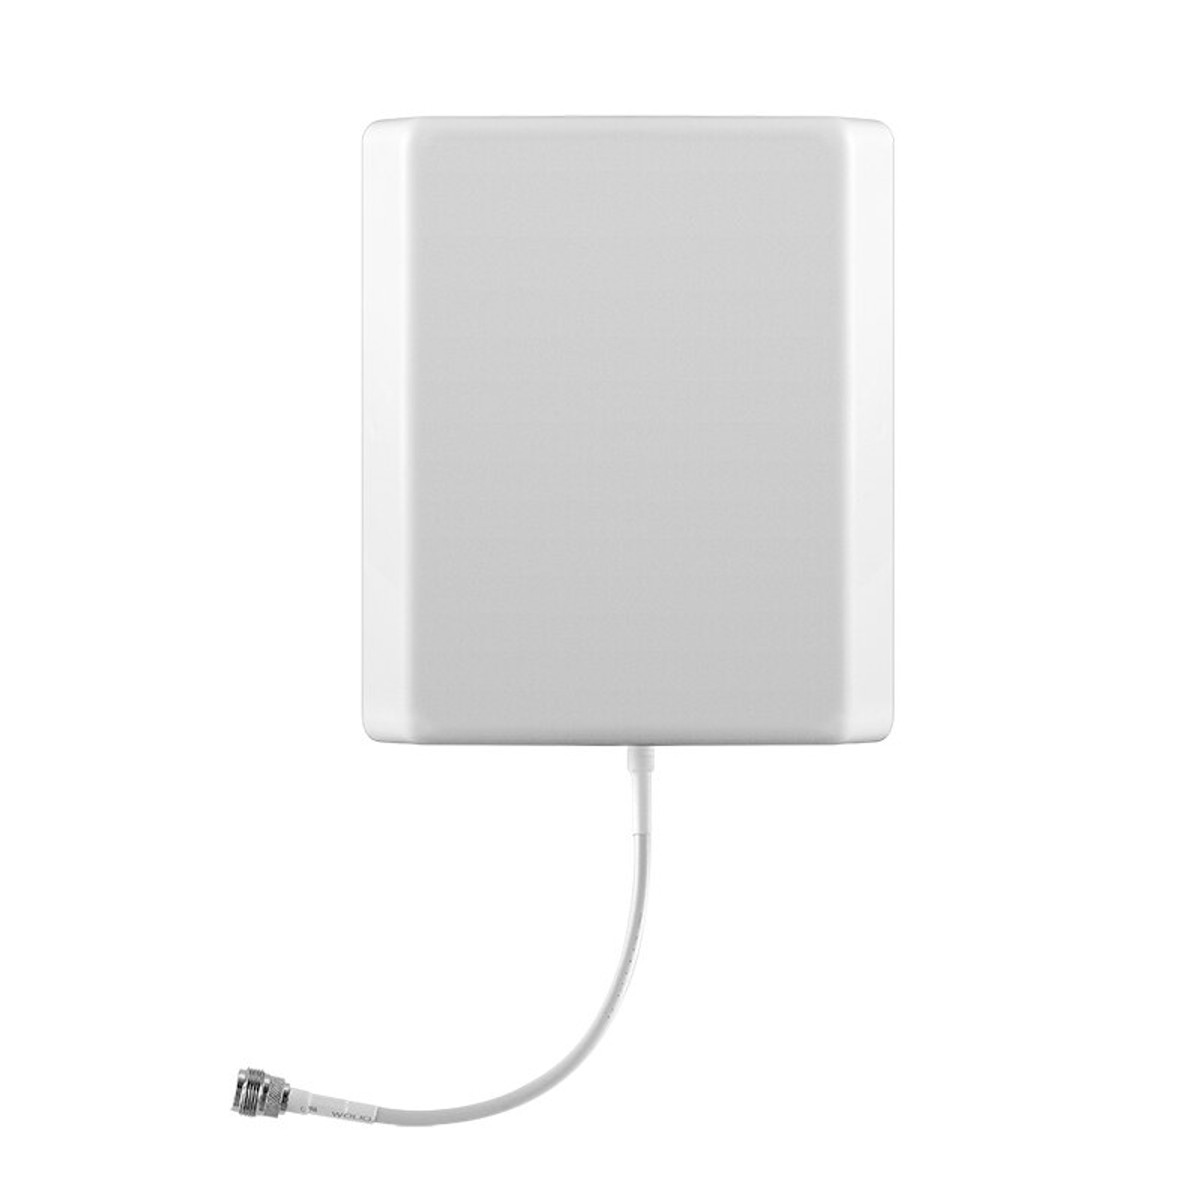 SureCall Fusion5S Signal Booster Panel Antenna